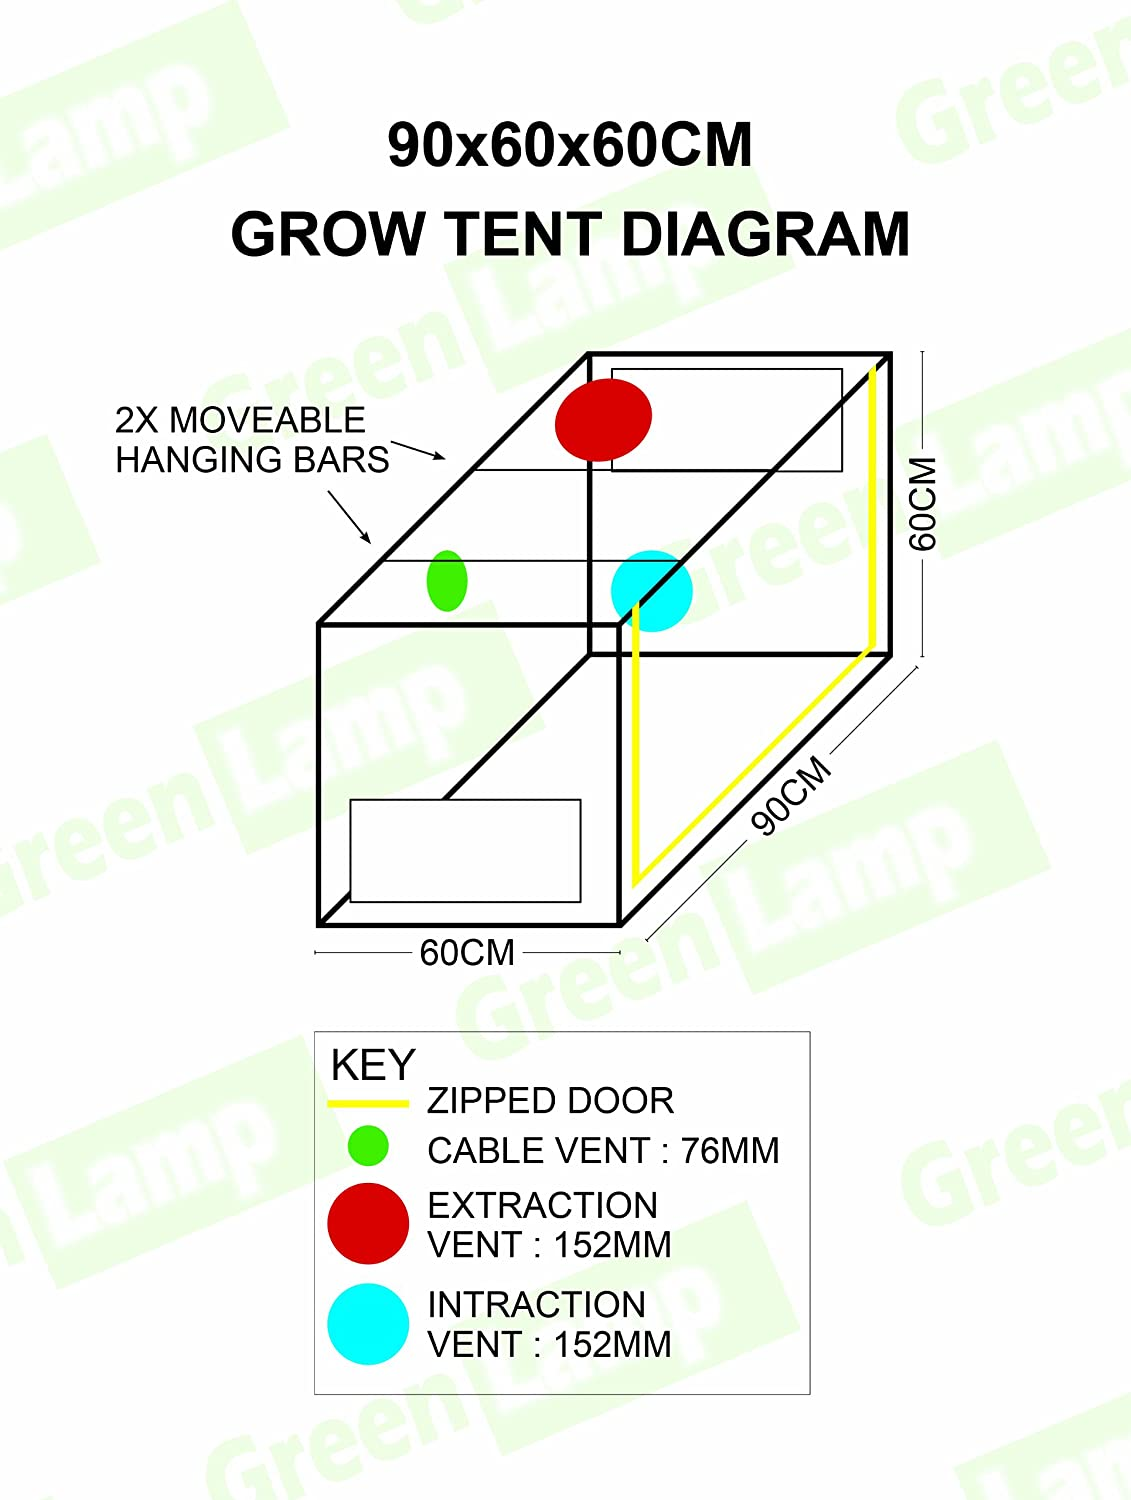 Green L& Premium 90 x 60 x 60cm 600D Mylar Indoor Propagation Grow Tent Box Hydroponics Dark Room Amazon.co.uk Garden u0026 Outdoors  sc 1 st  Amazon UK & Green Lamp Premium 90 x 60 x 60cm 600D Mylar Indoor Propagation ...